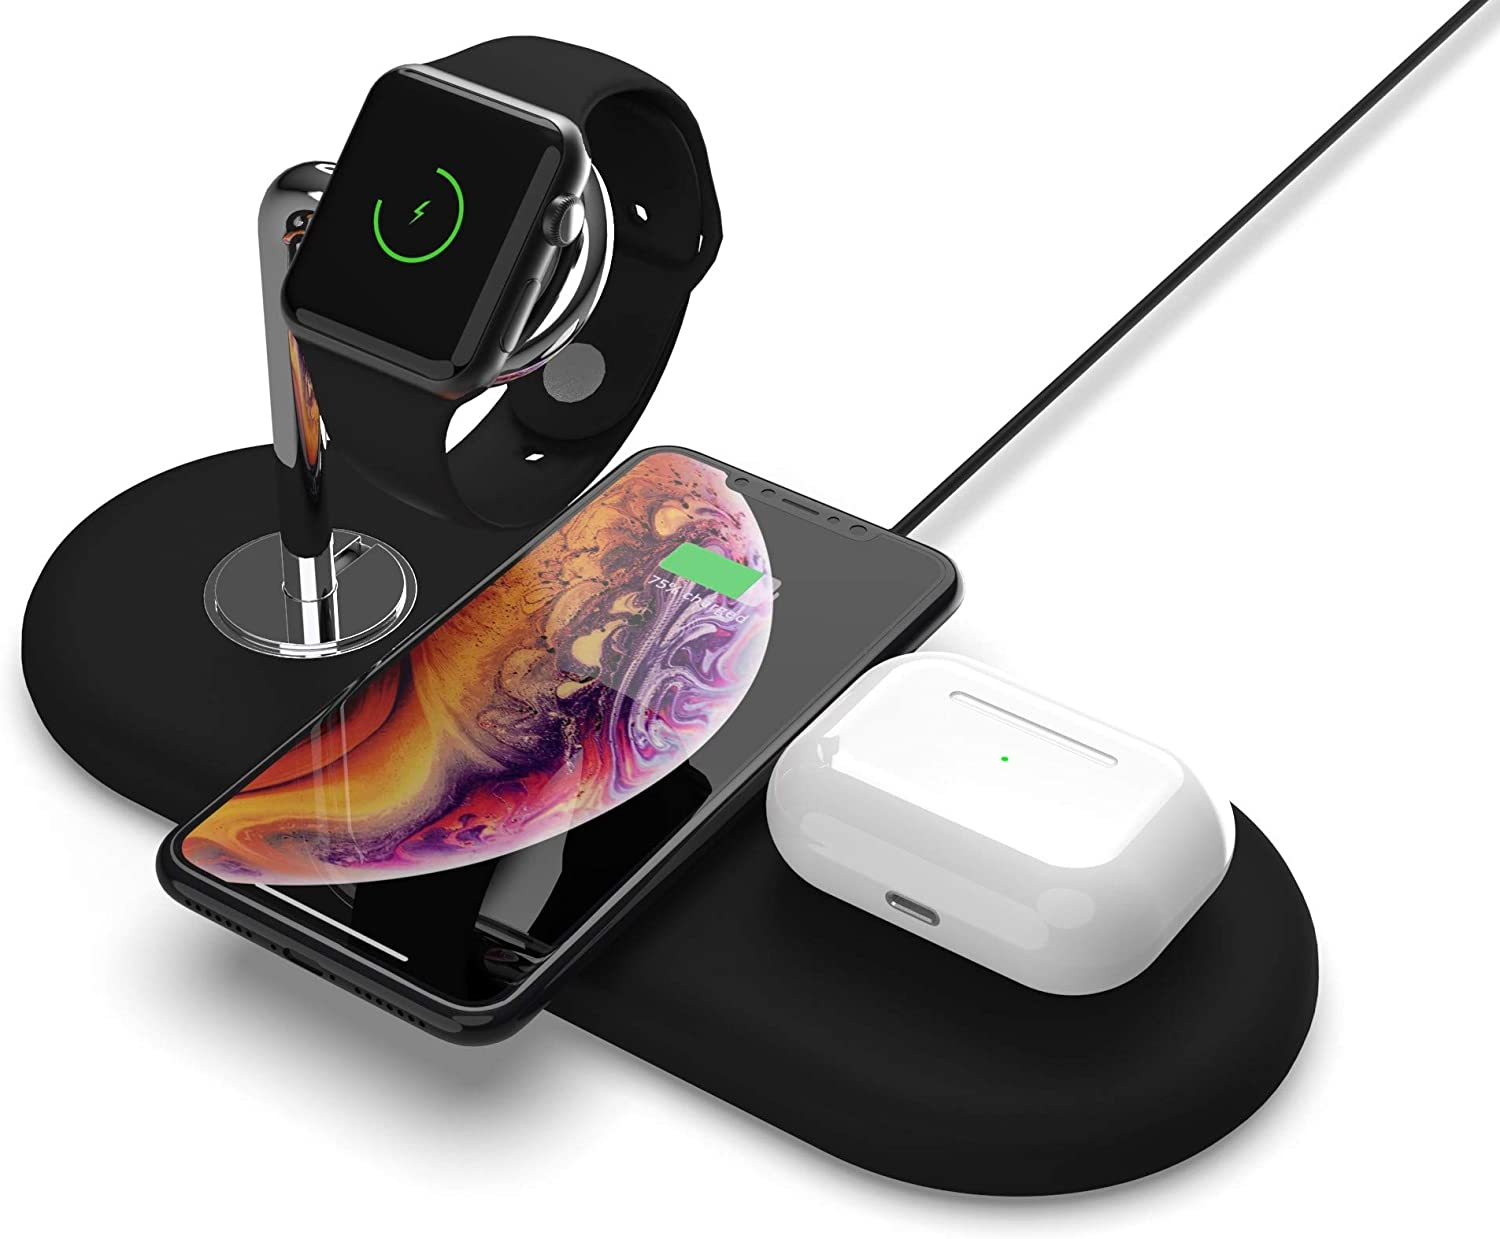 Wireless Charging Pad for Phone & Electronics - 5 Coil - 3 in 1 Charger for Apple iPhone 8, XR, 11 & iWatch, Samsung Galaxy - 5W 7.5W 10W Fast Charge 18W Qualcomm 3.0 Adapter and USB-C Included